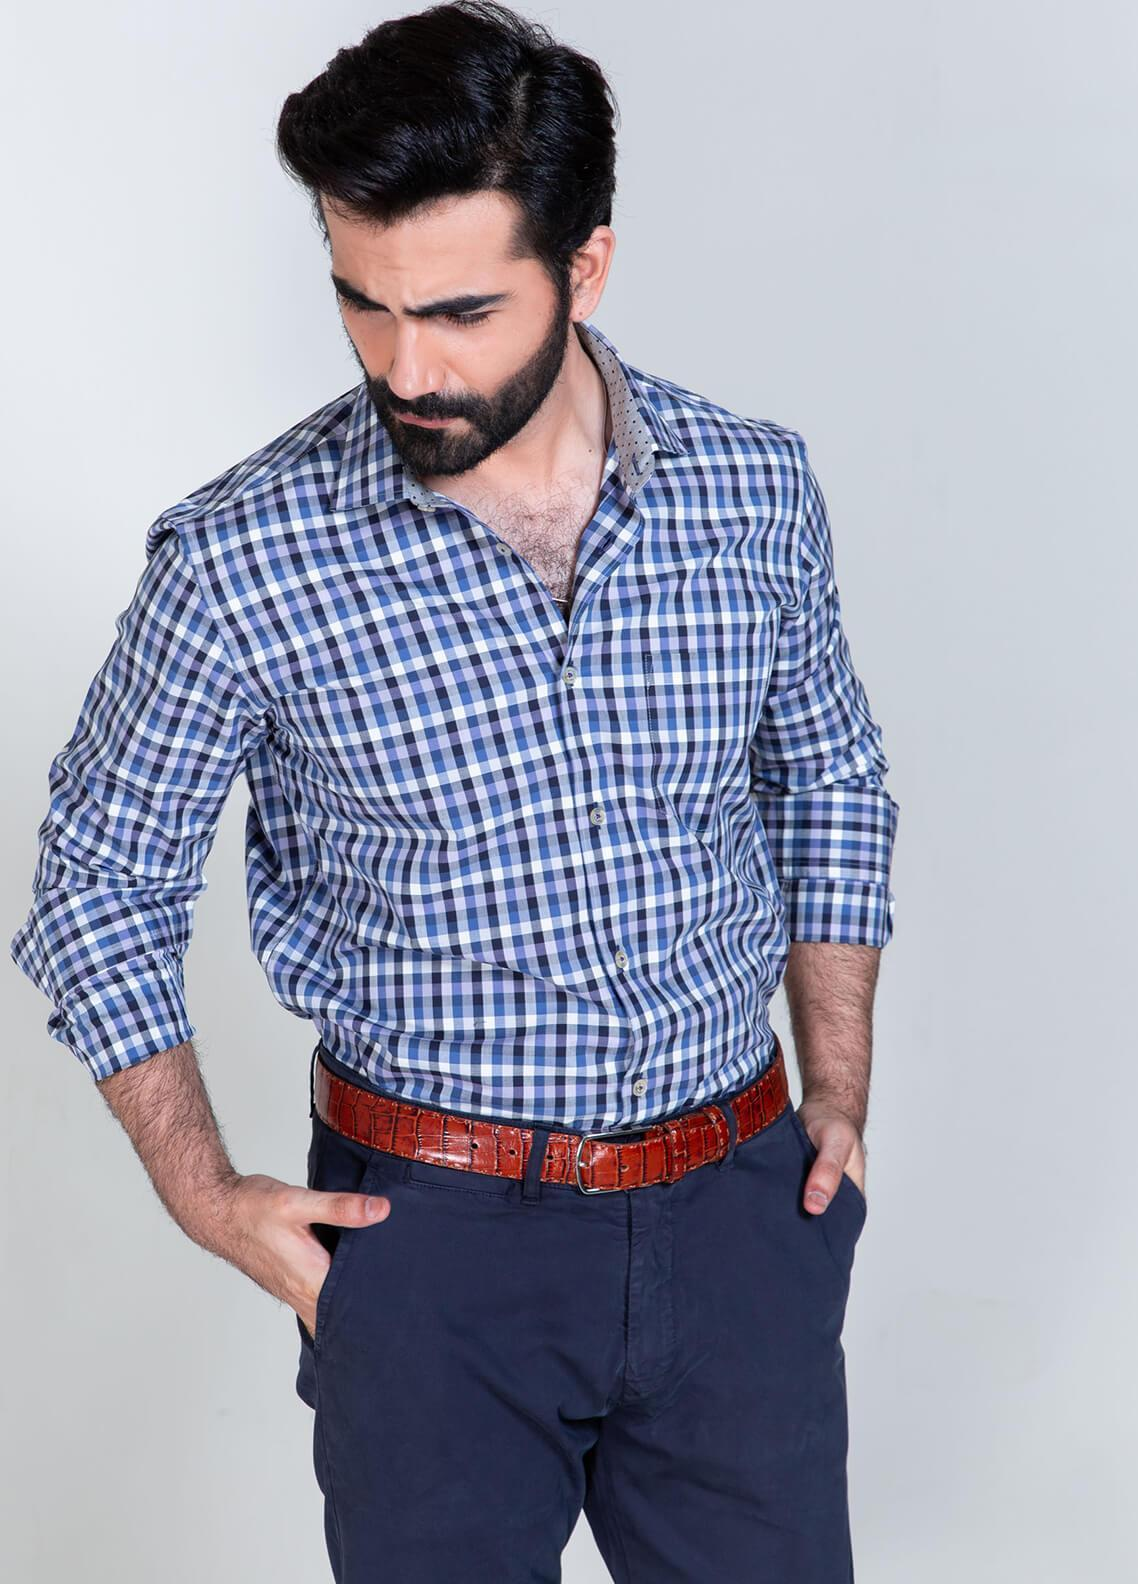 Brumano Cotton Formal Men Shirts - Blue BRM-606